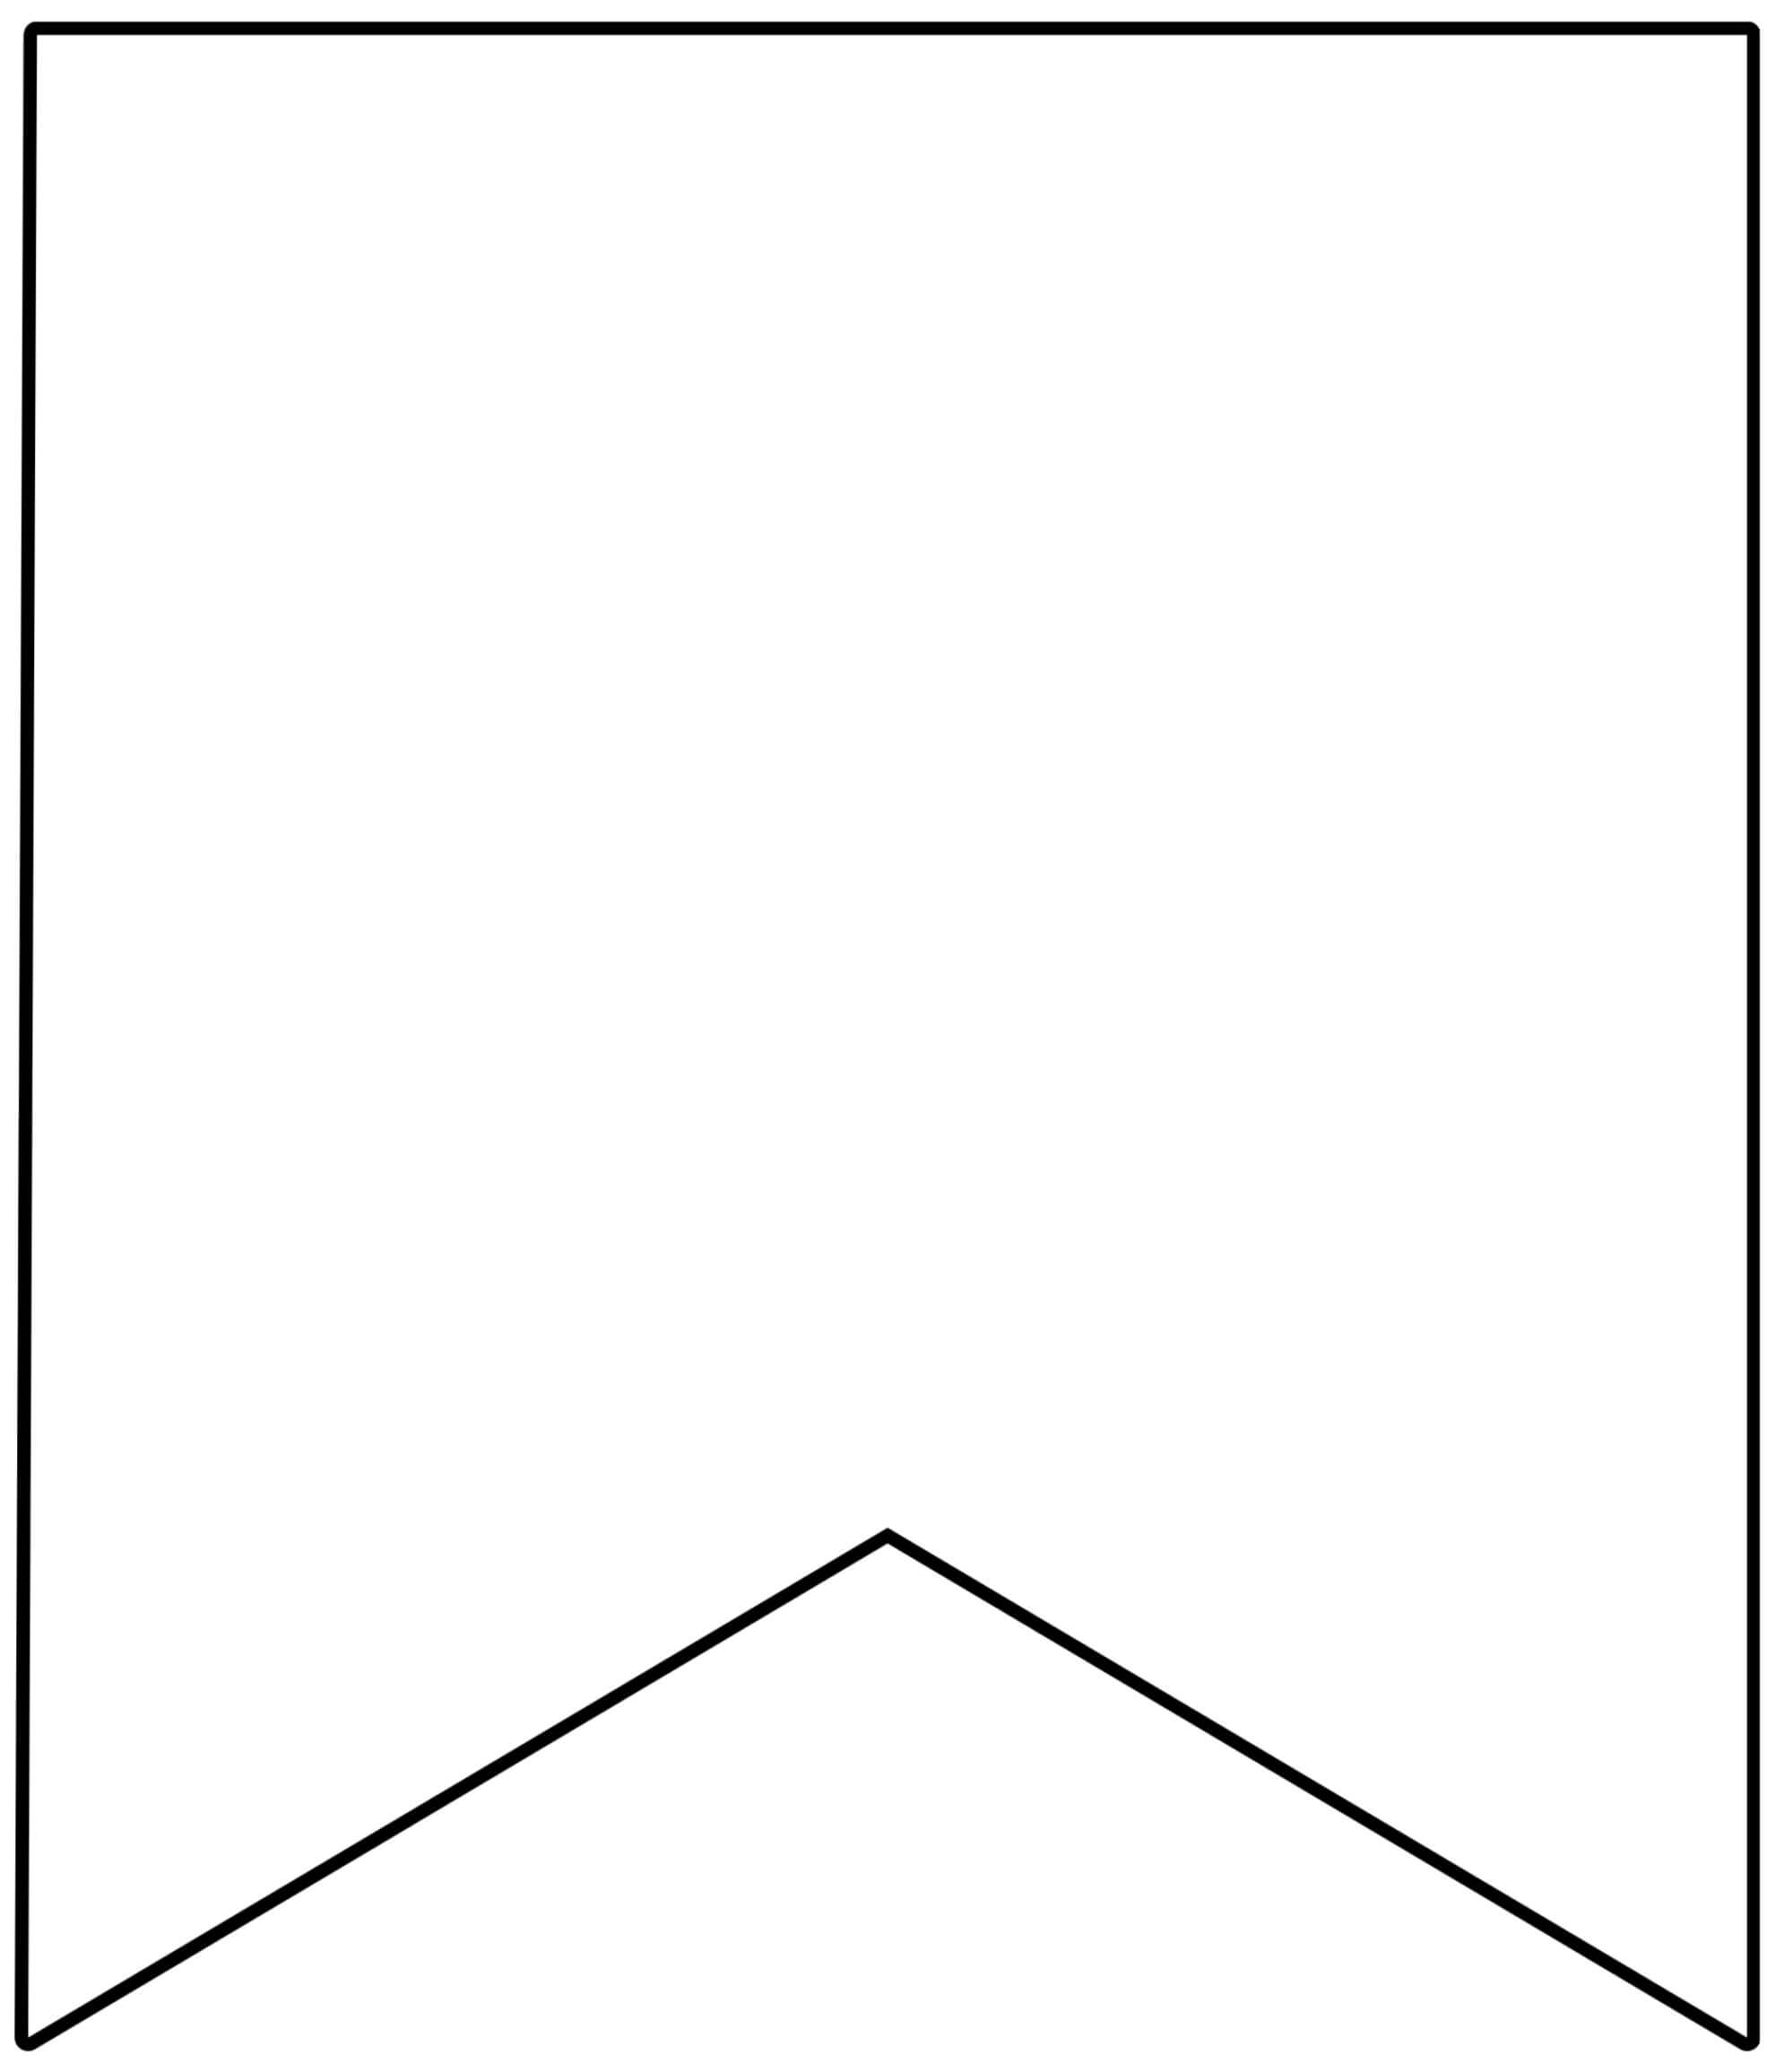 Free Printable Banner Templates {Blank Banners} - Paper With Printable Pennant Banner Template Free